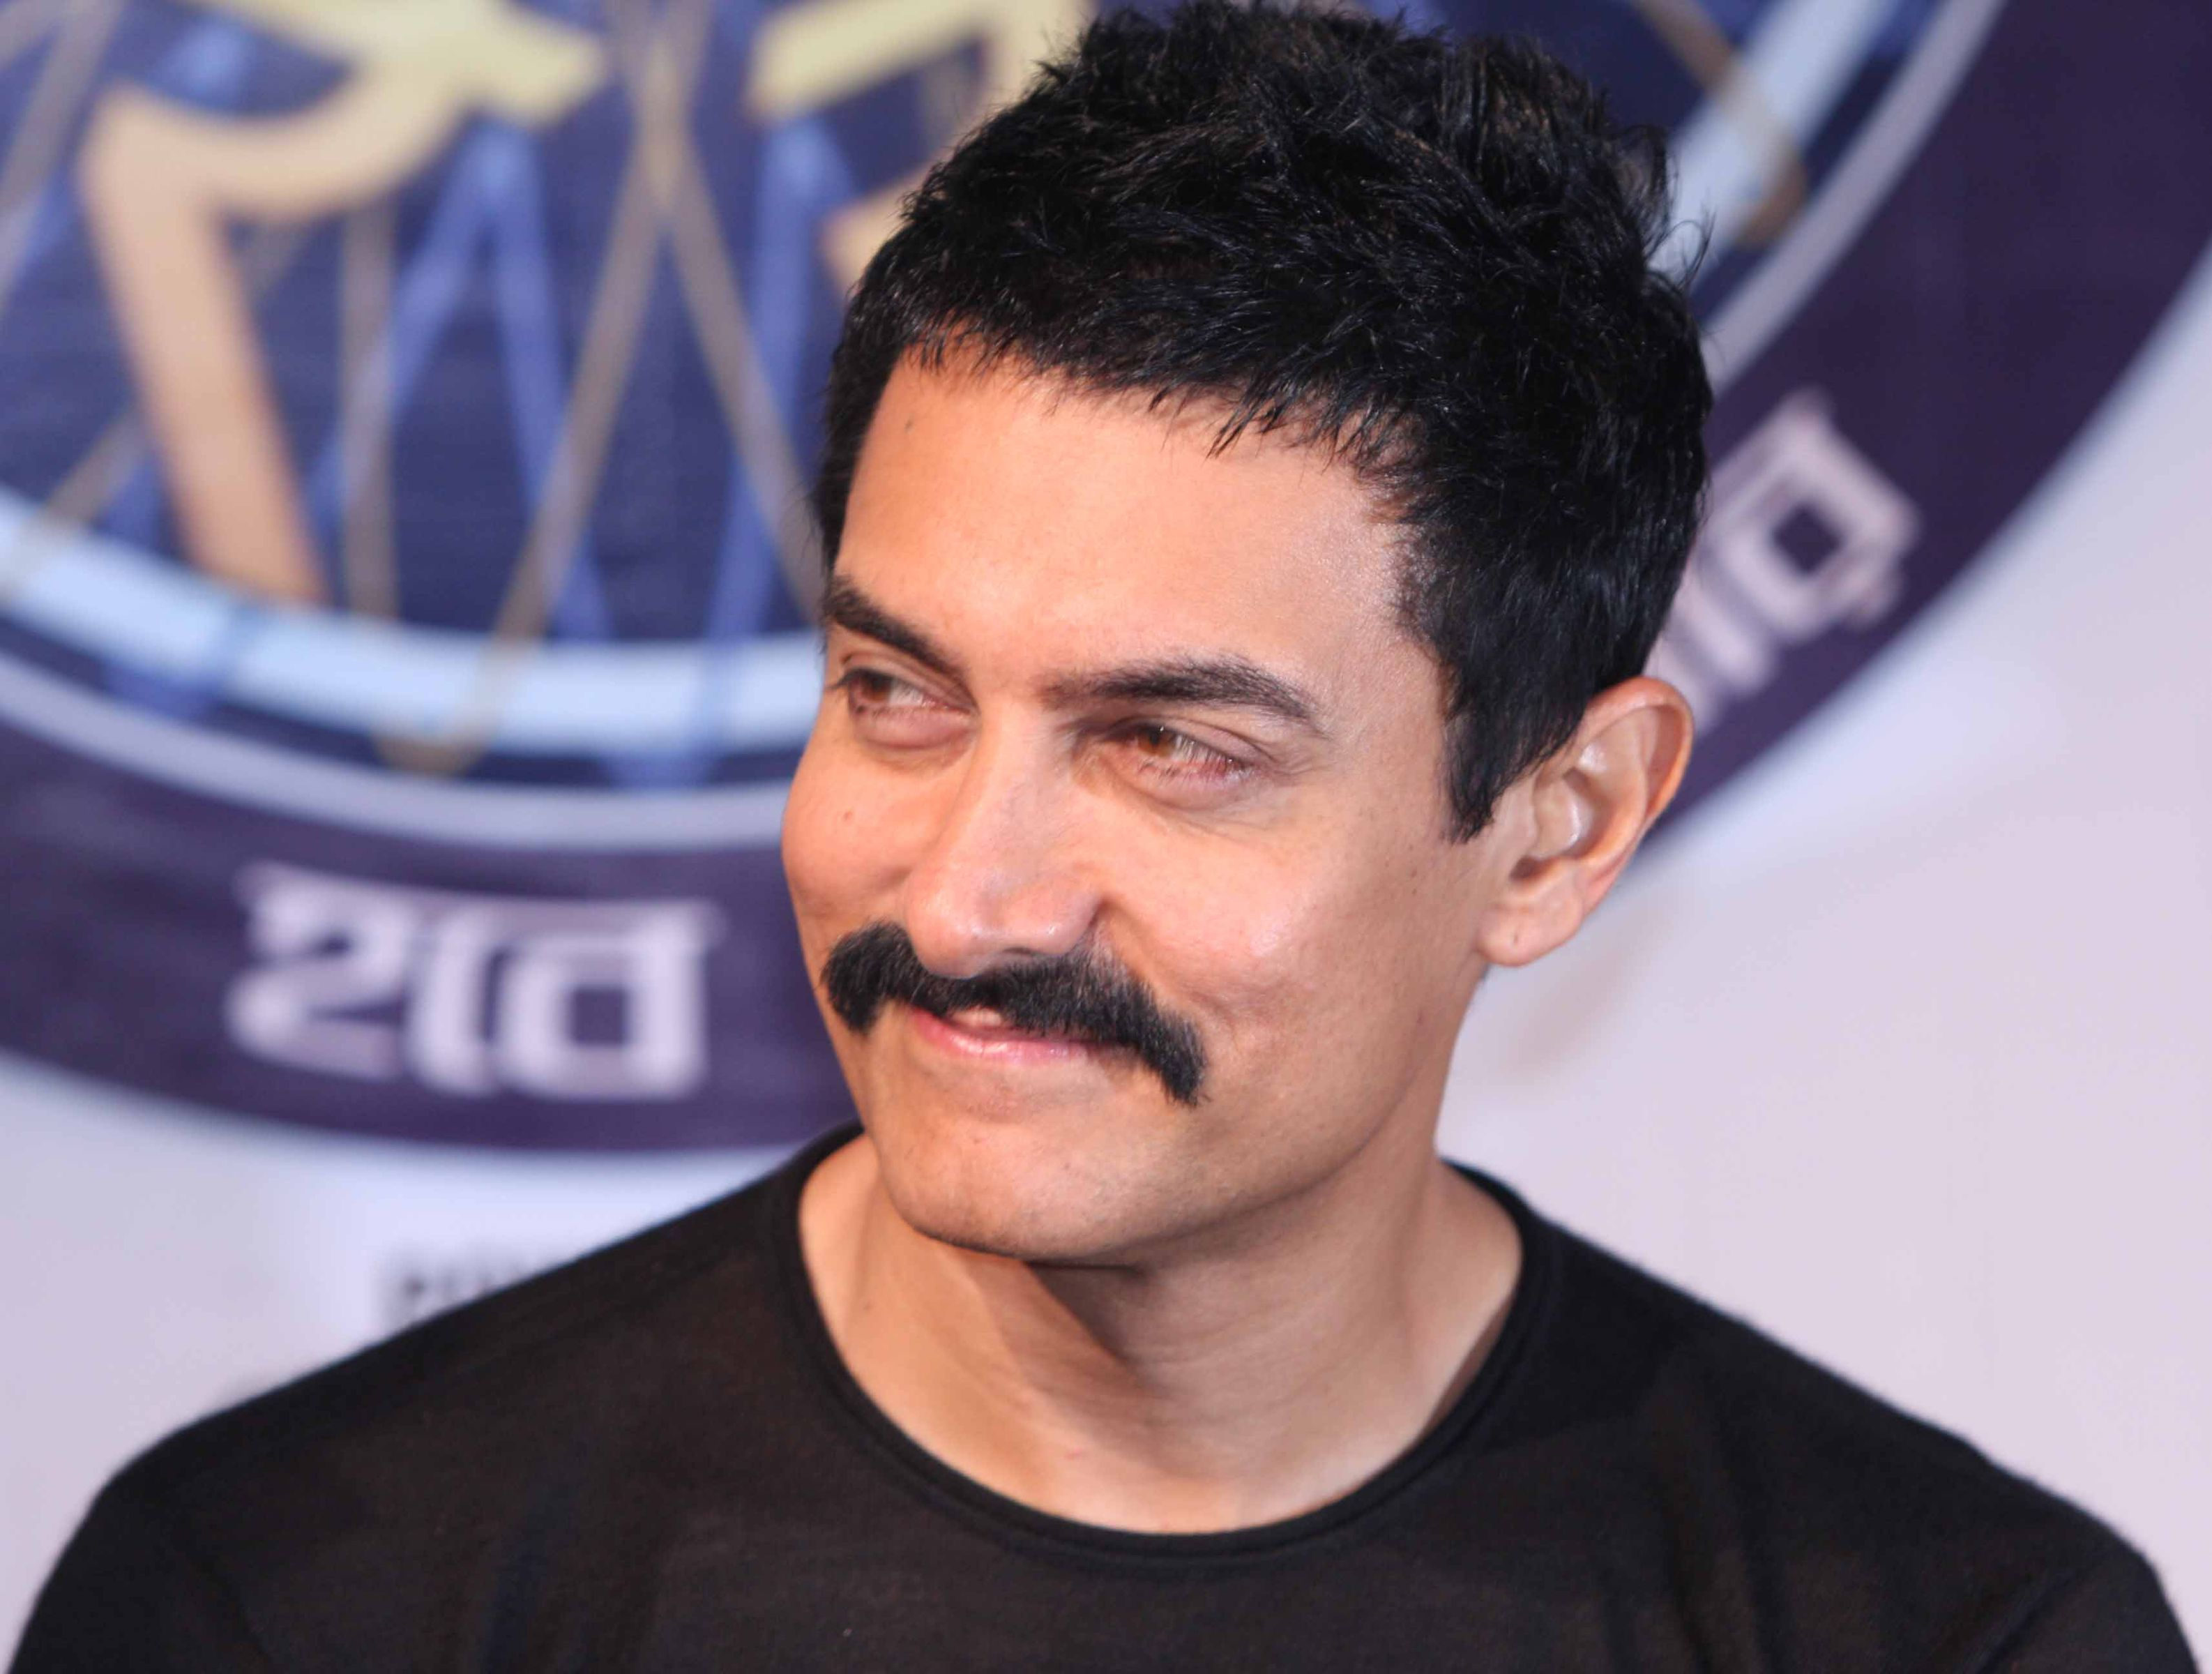 Aamir Khan Pic Download: Aamir Khan Wallpapers High Resolution And Quality Download